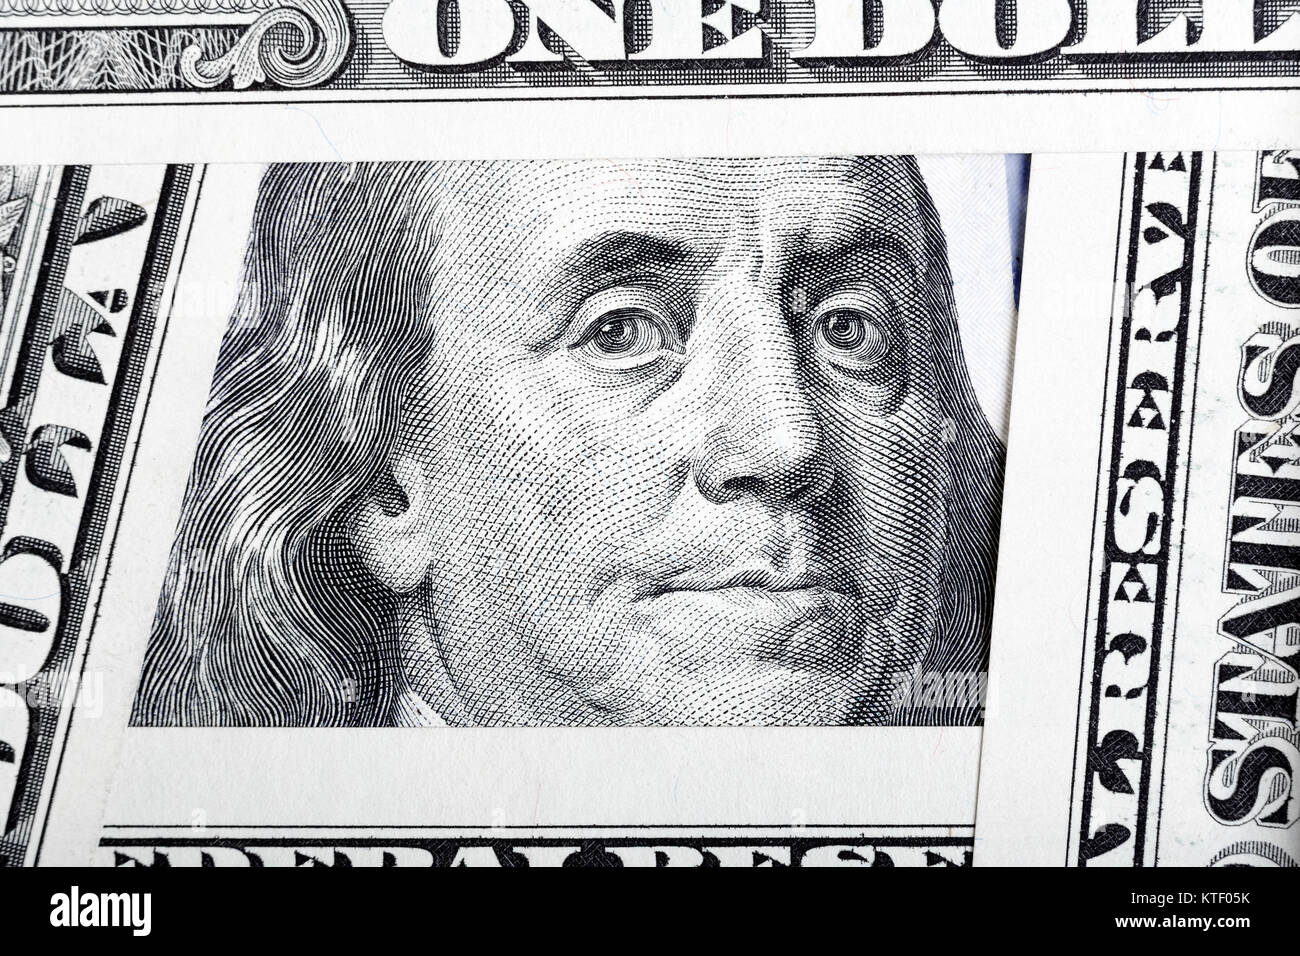 Benjamin Franklin on the one hundred dollar bill framed by other - Stock Image